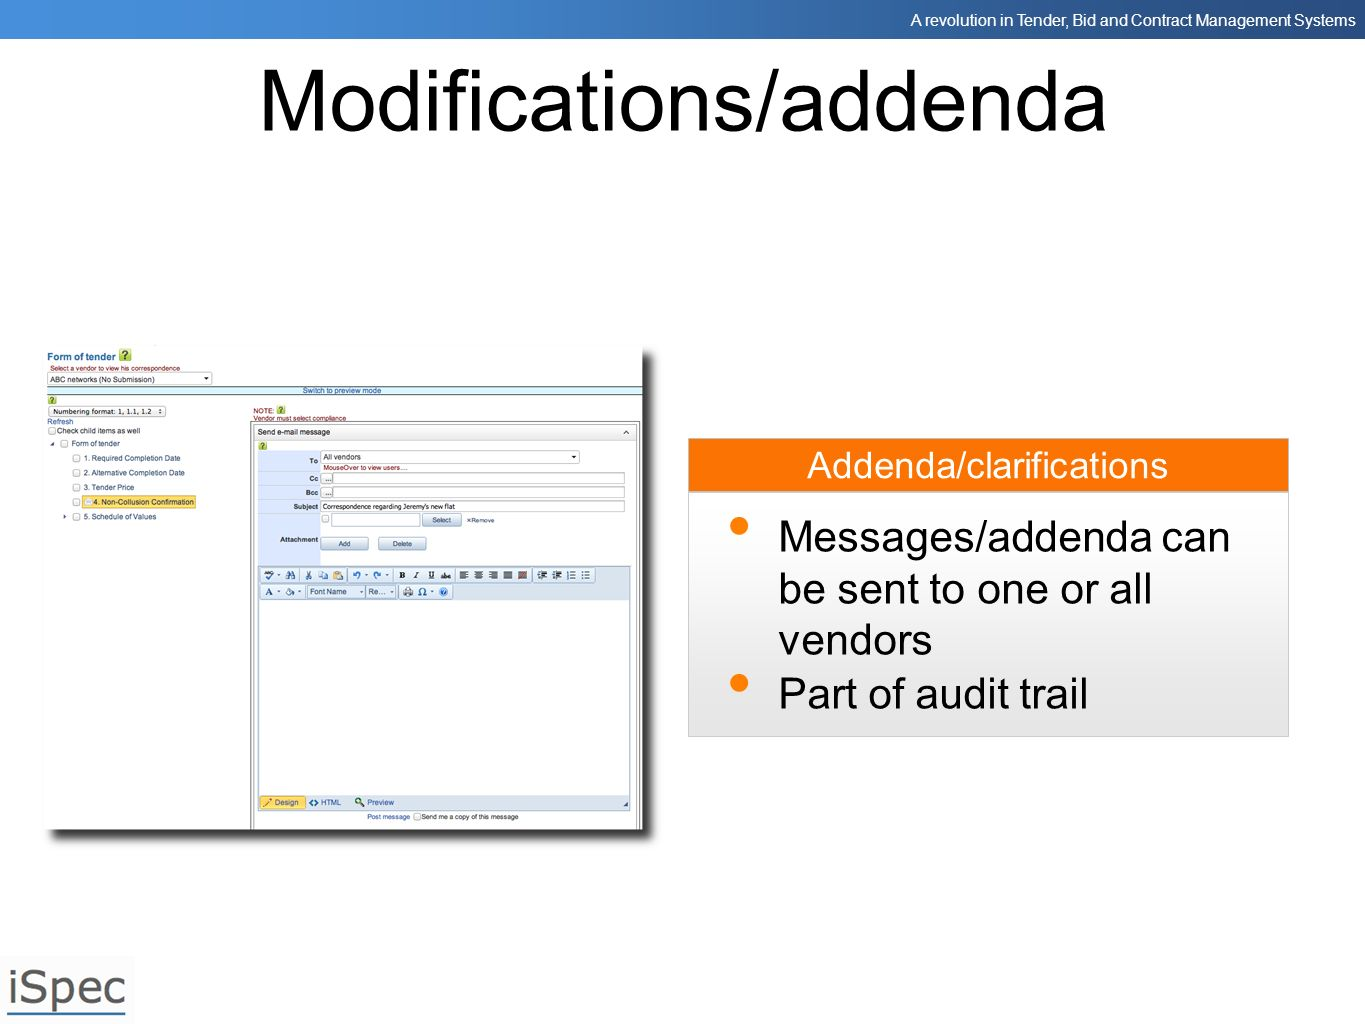 Modifications/addenda